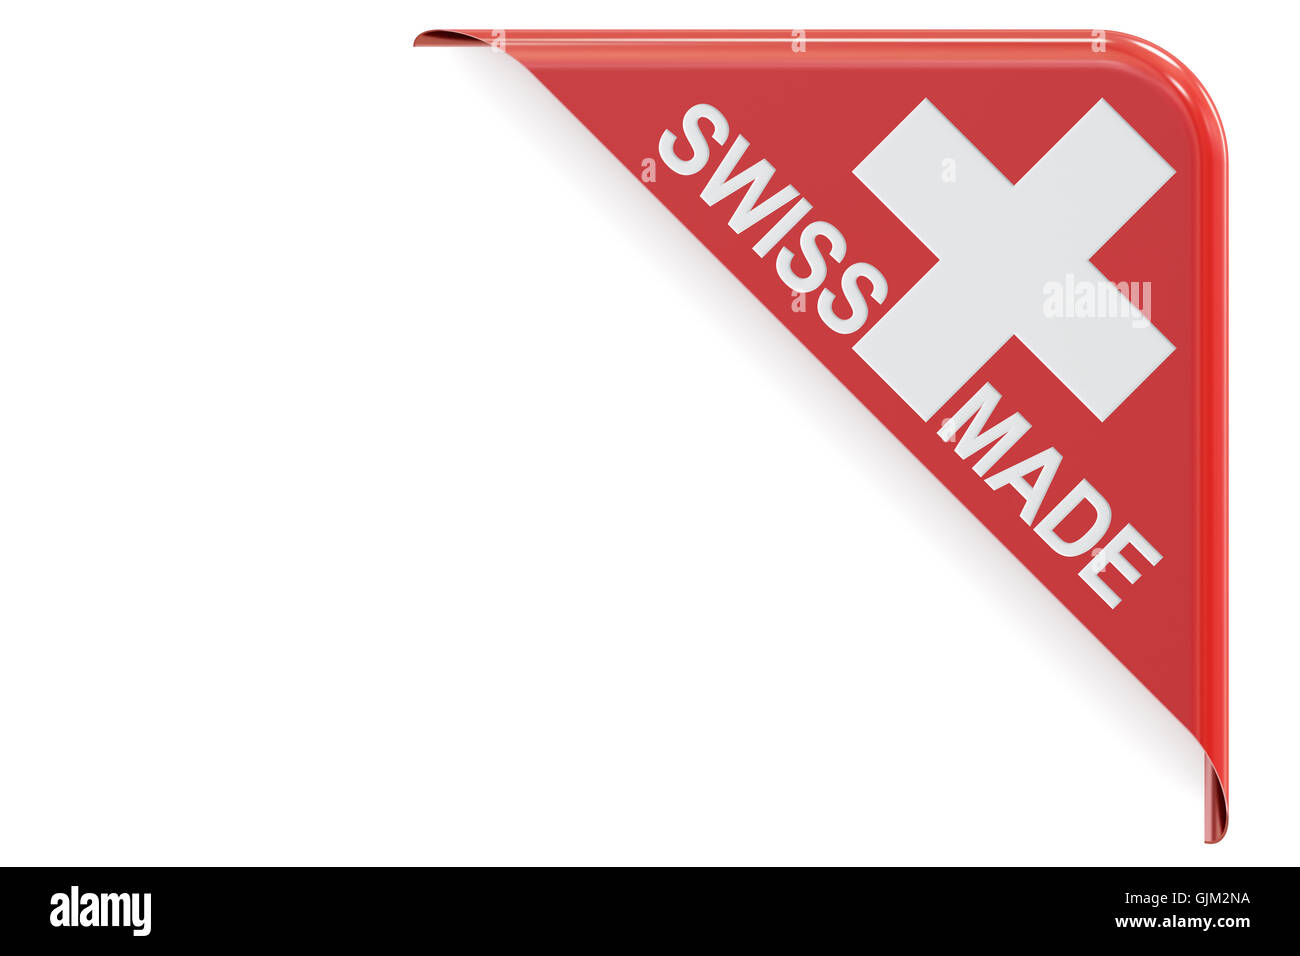 Swiss made concept, red corner. 3D rendering isolated on white background - Stock Image